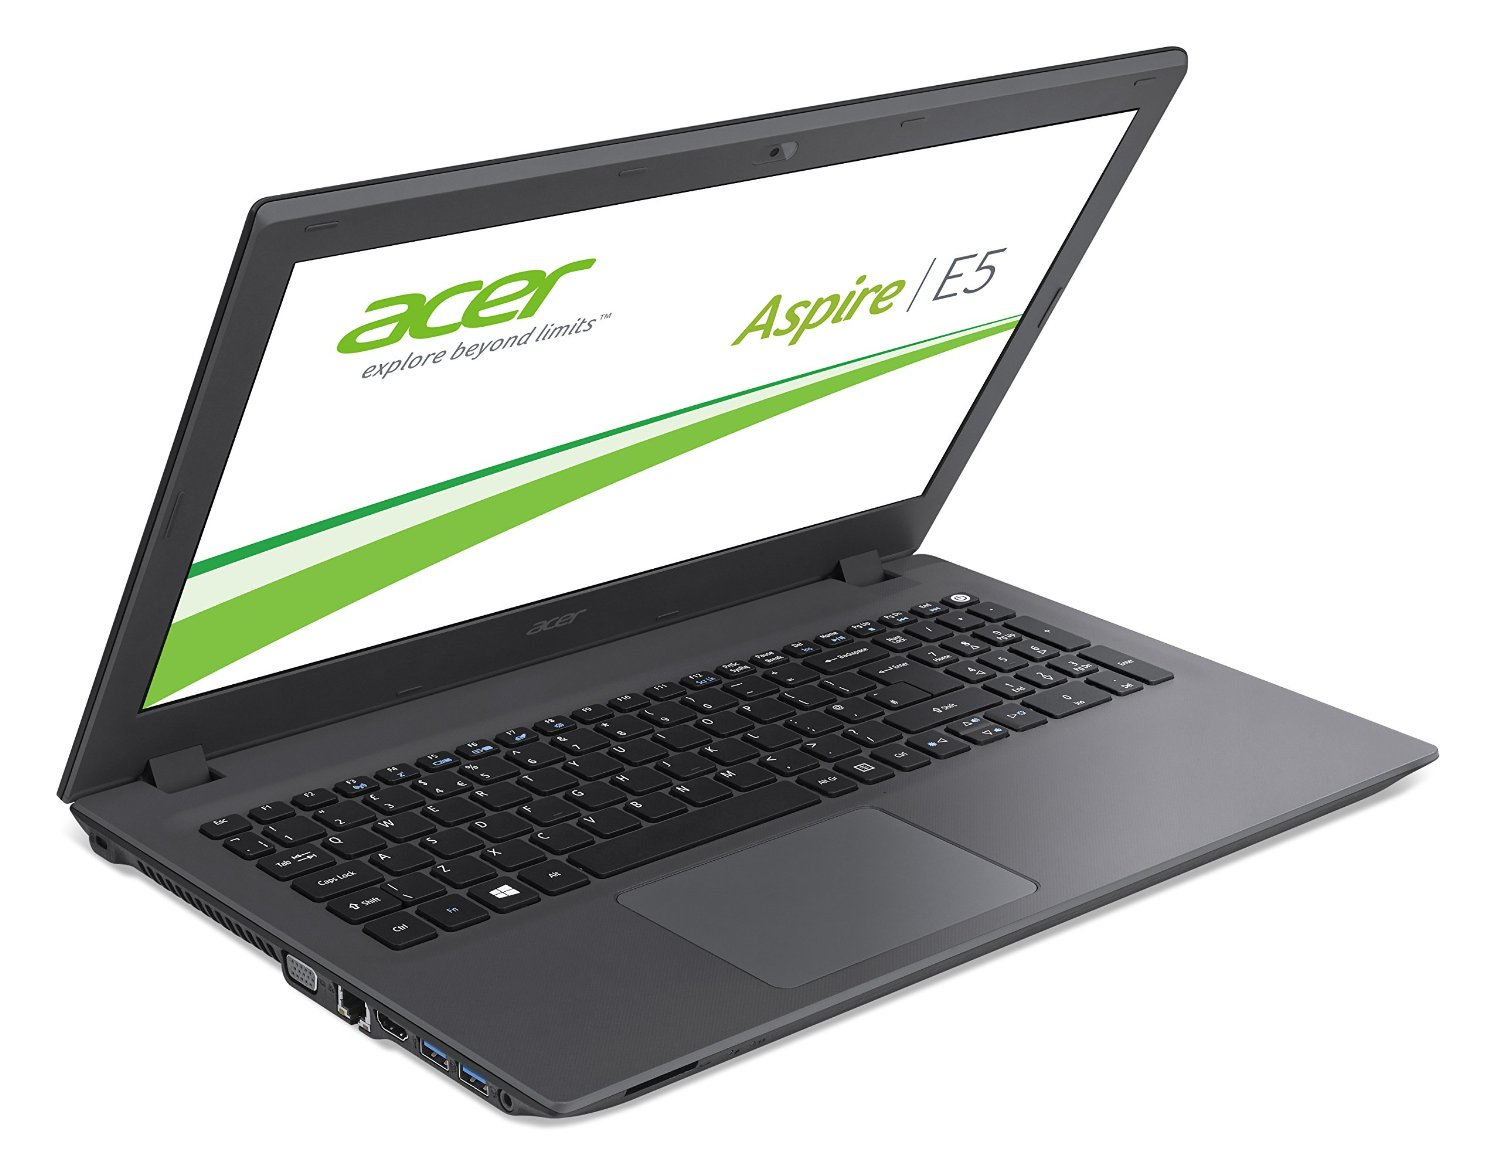 acer aspire e17 e5 773g 74ty 17 3 notebook 8gb ddr3 1tb hdd 128gb ssd i7 win 10 ebay. Black Bedroom Furniture Sets. Home Design Ideas